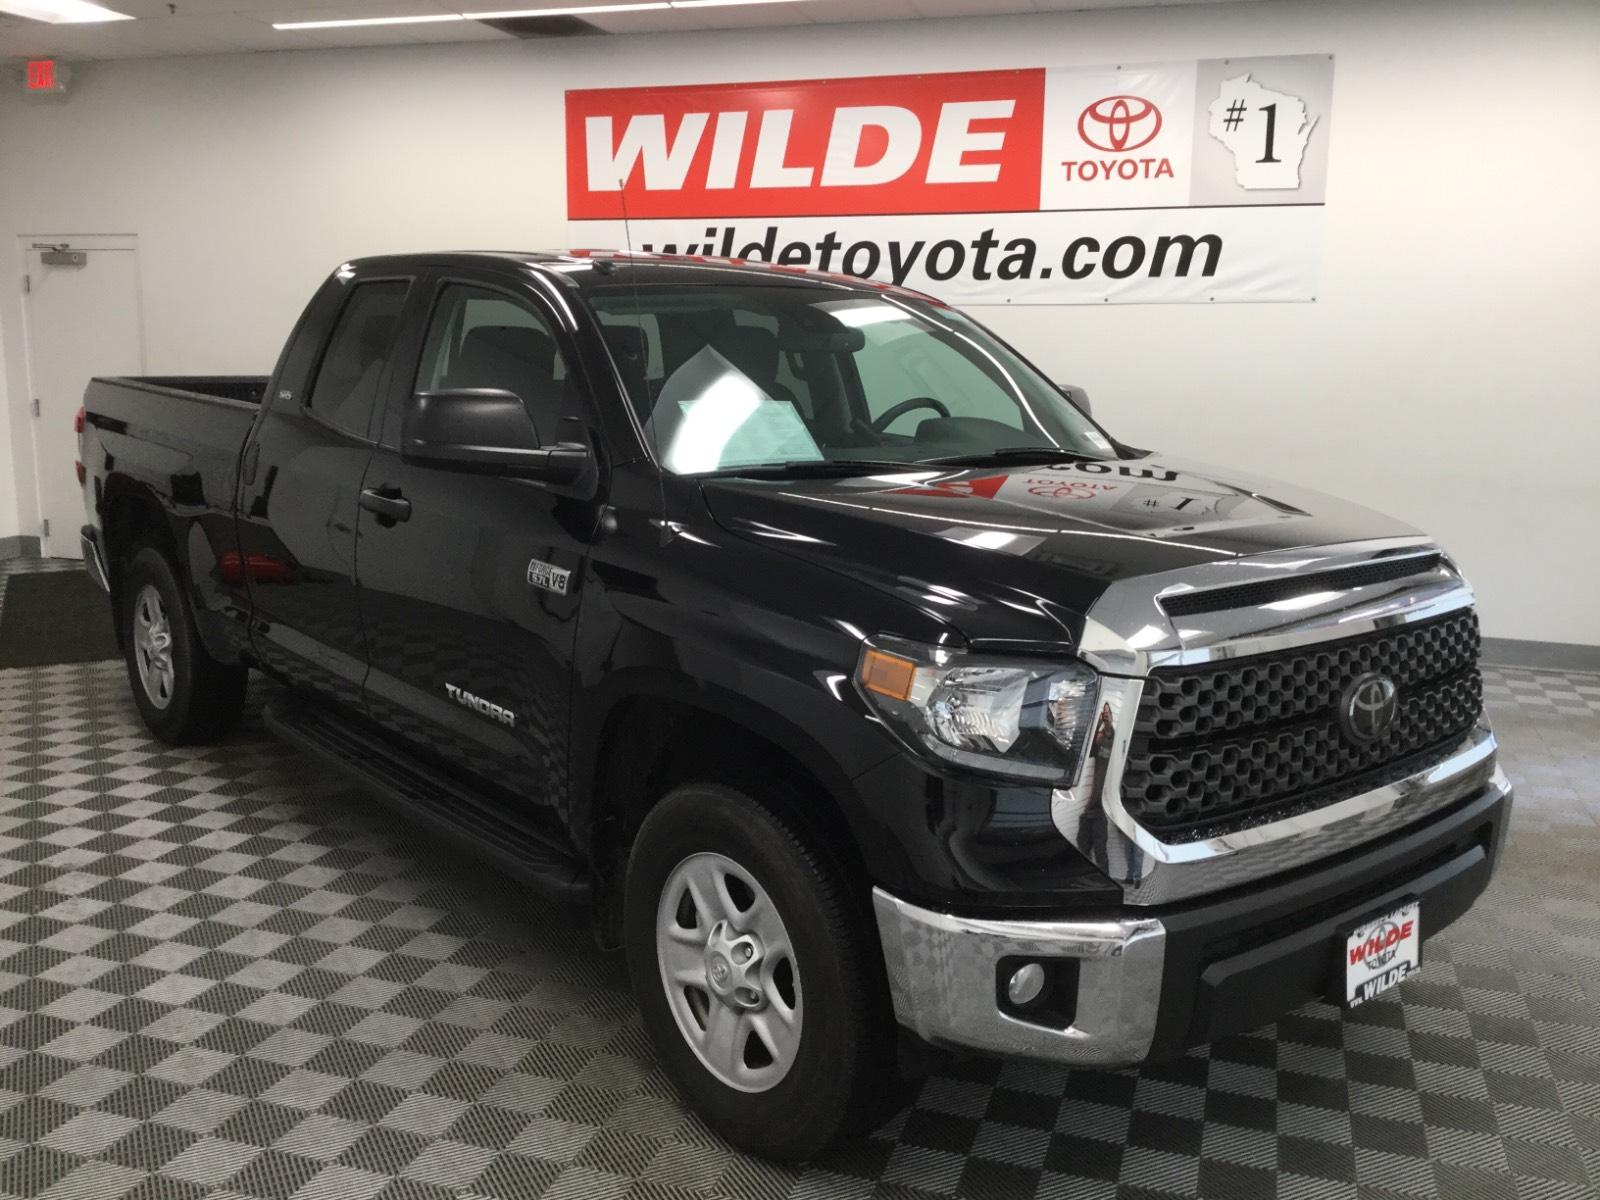 Pre-Owned 2019 Toyota Tundra SR5 Double Cab 6.5' Bed 5.7L